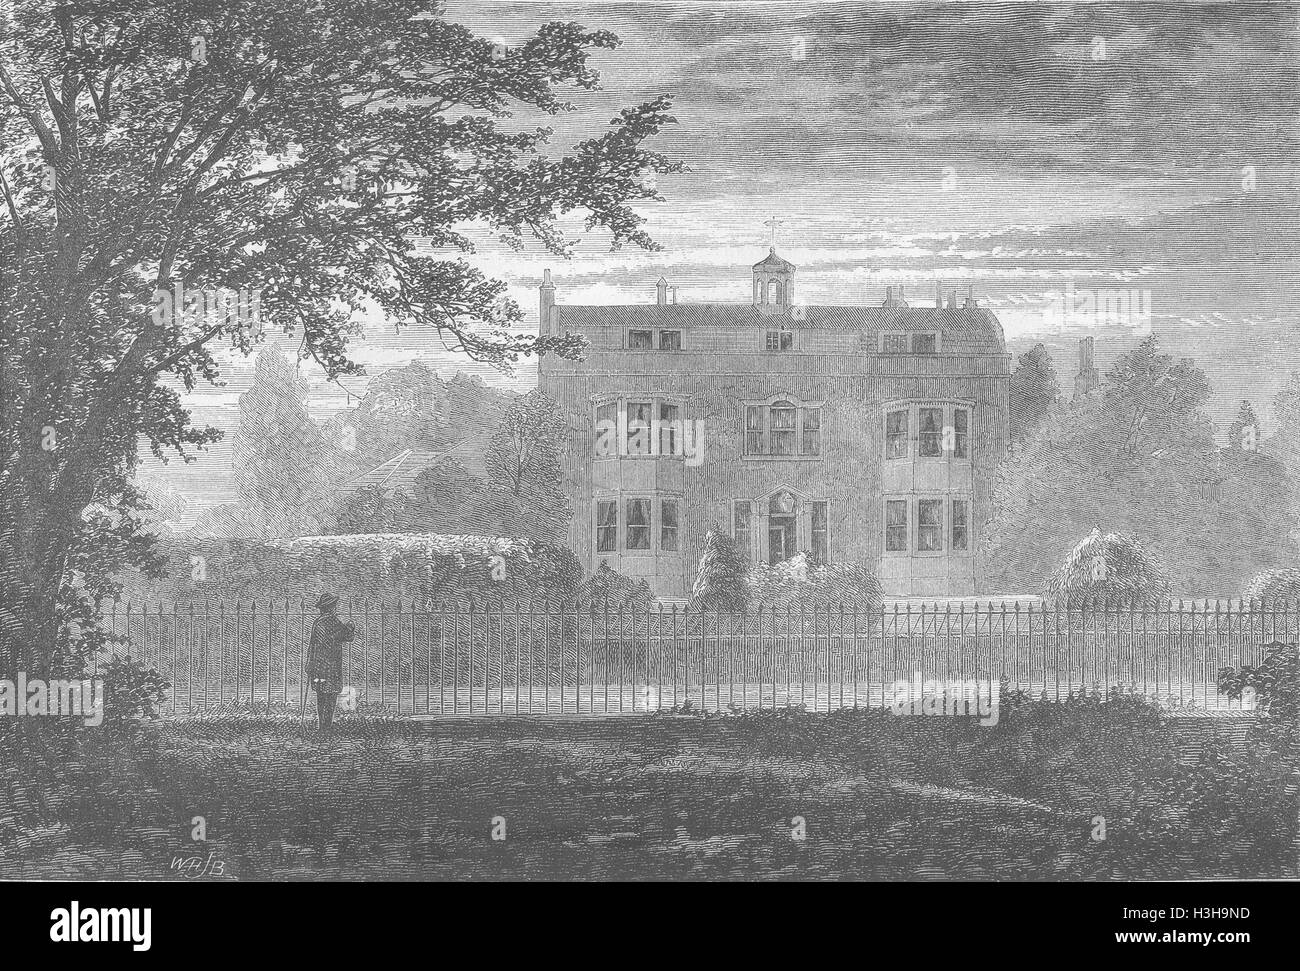 KENT Charles Dickenss House, Gad's Hill 1870. The Graphic - Stock Image